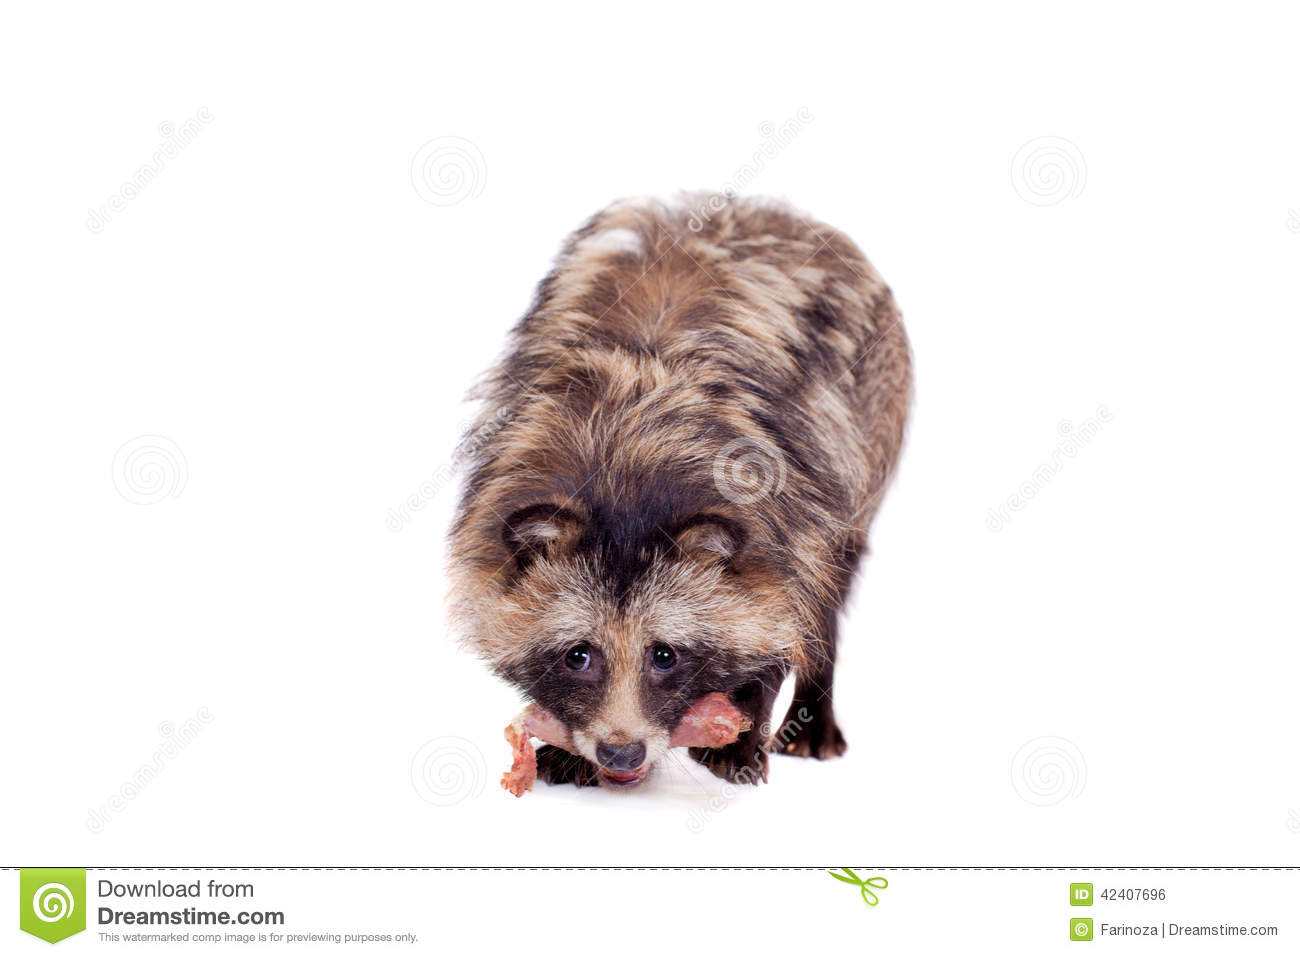 Raccoon Dog clipart #1, Download drawings